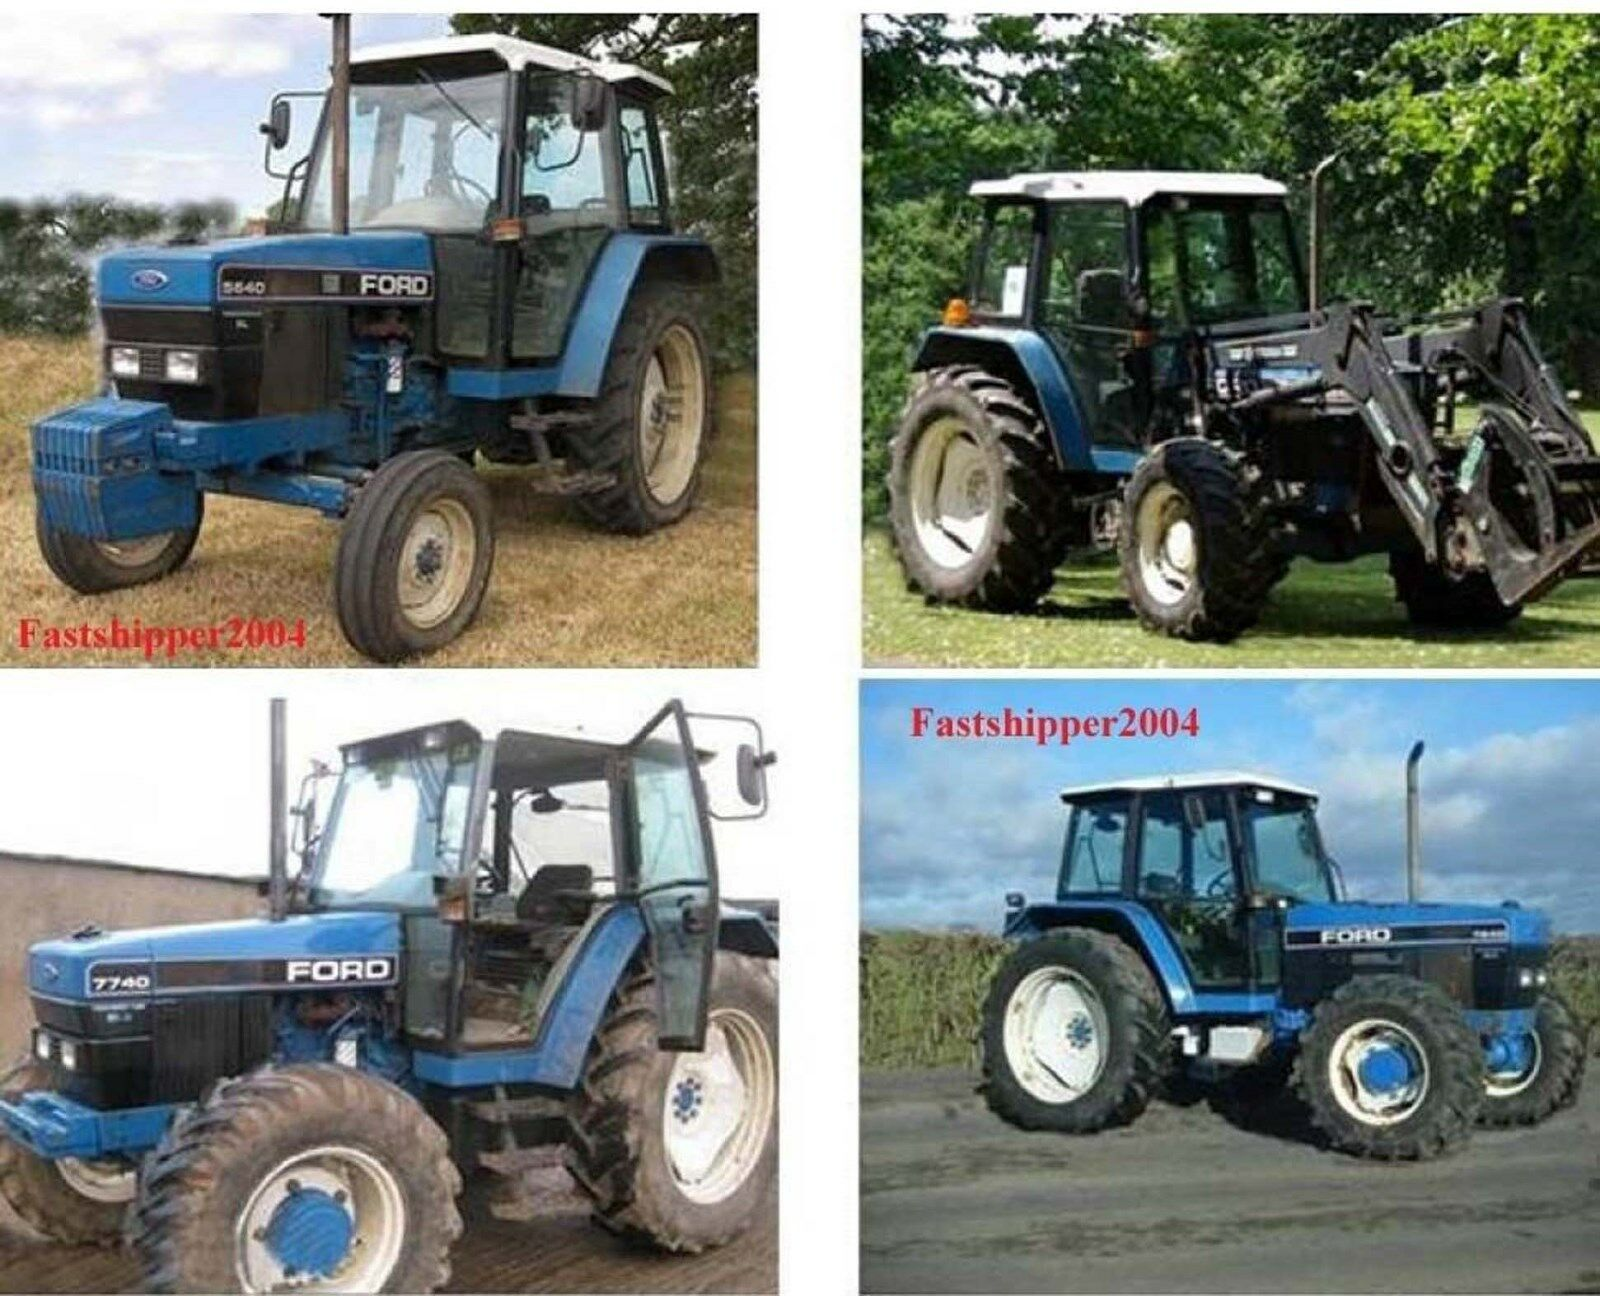 Ford New Holland 40 Series Tractors 5640 6640 7740 7840 8240 8340 Service  Manual 1 of 5FREE Shipping Ford New Holland 40 Series Tractors 5640 6640  7740 ...